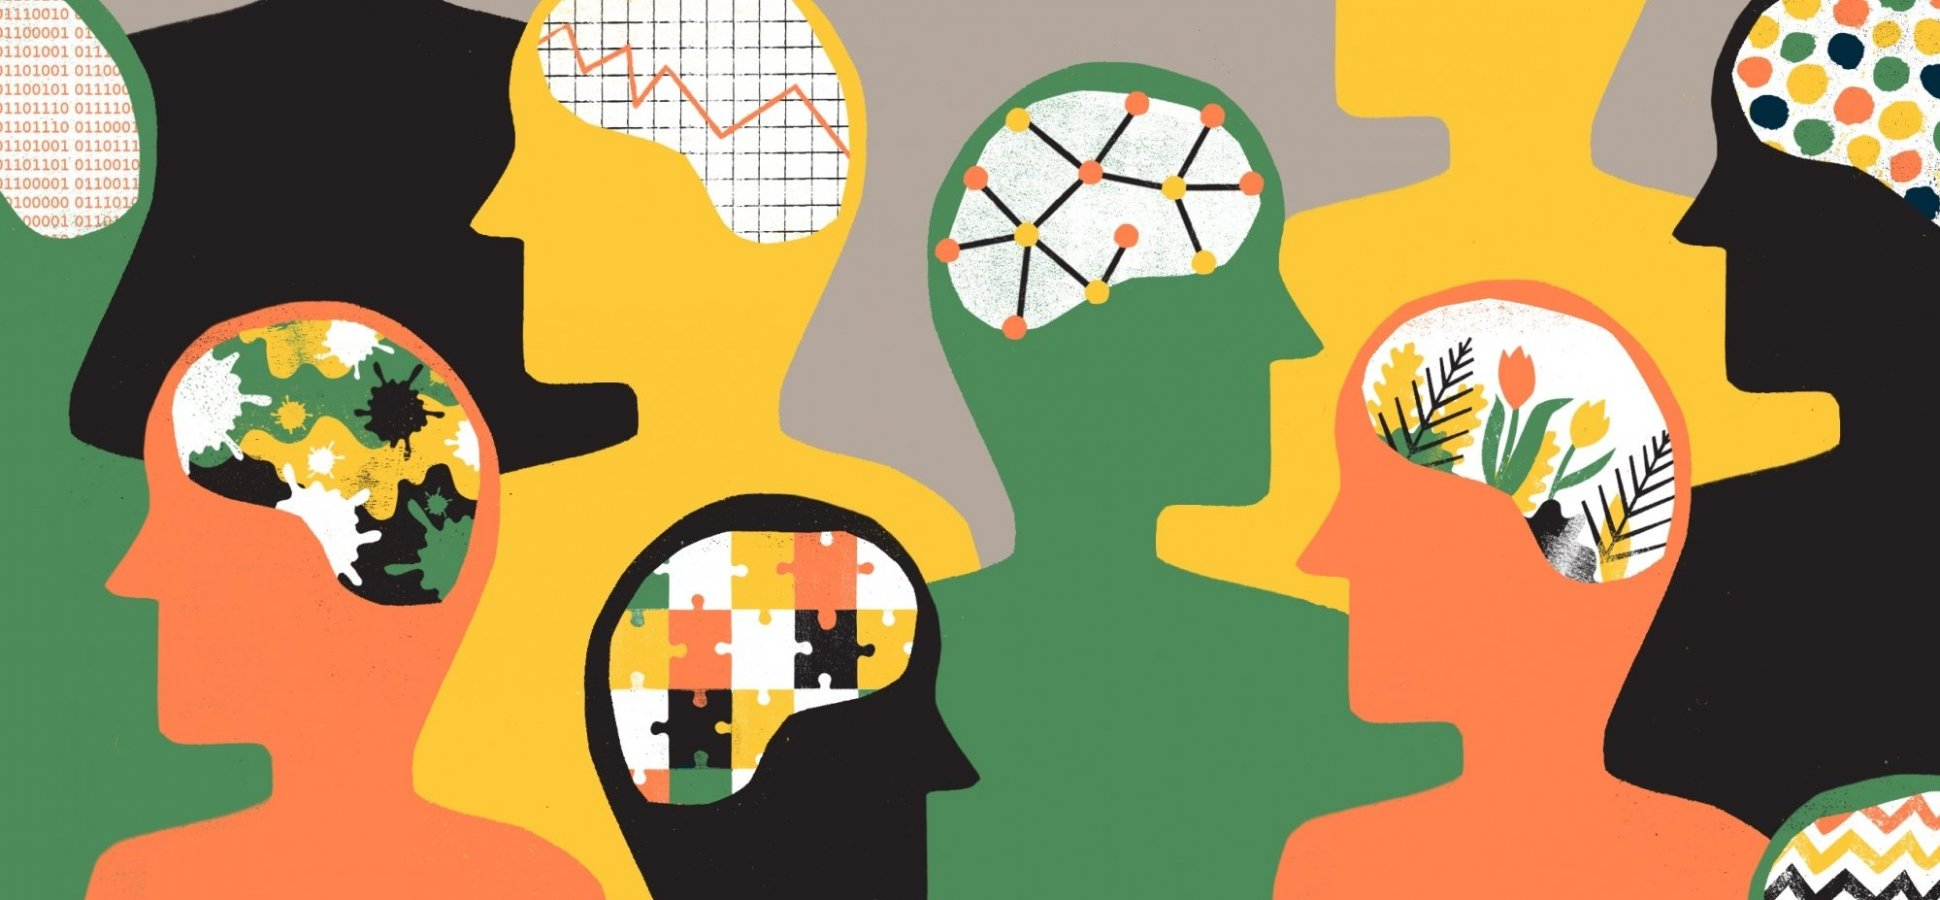 7 Simple Ways to Deepen Your Emotional Intelligence